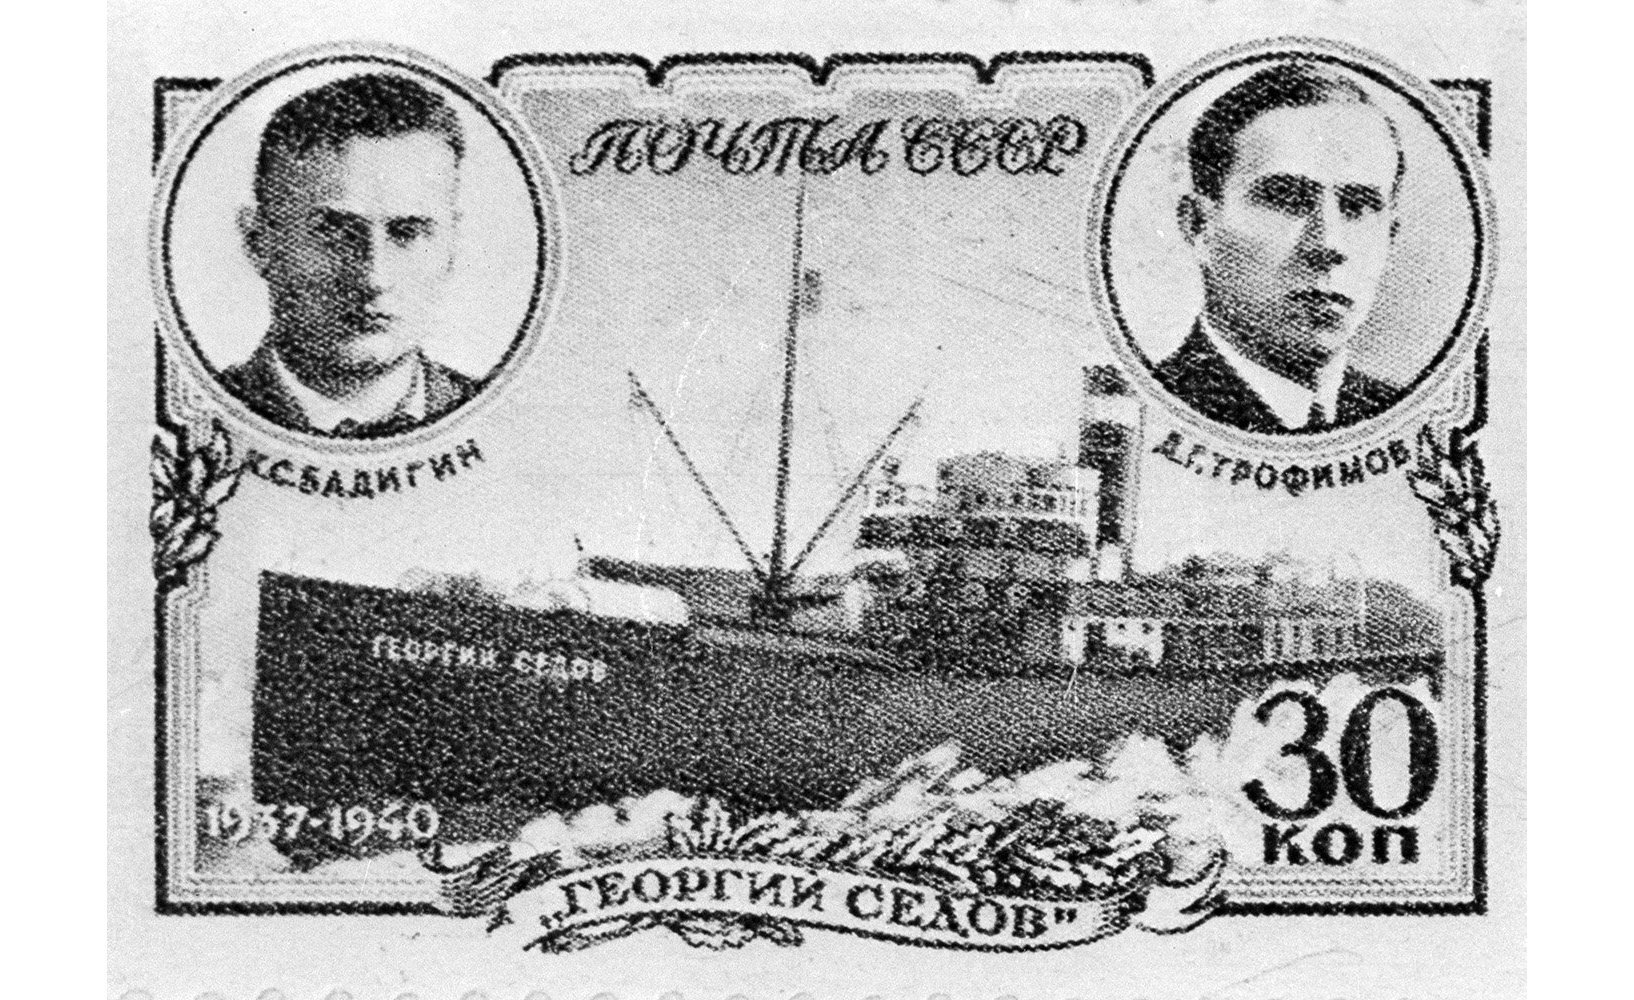 A Soviet postage stamp depicting the icebreaker Georgy Sedov and portraits of captain Konstantin Badigin and senior engineer Dmitry Trofimov